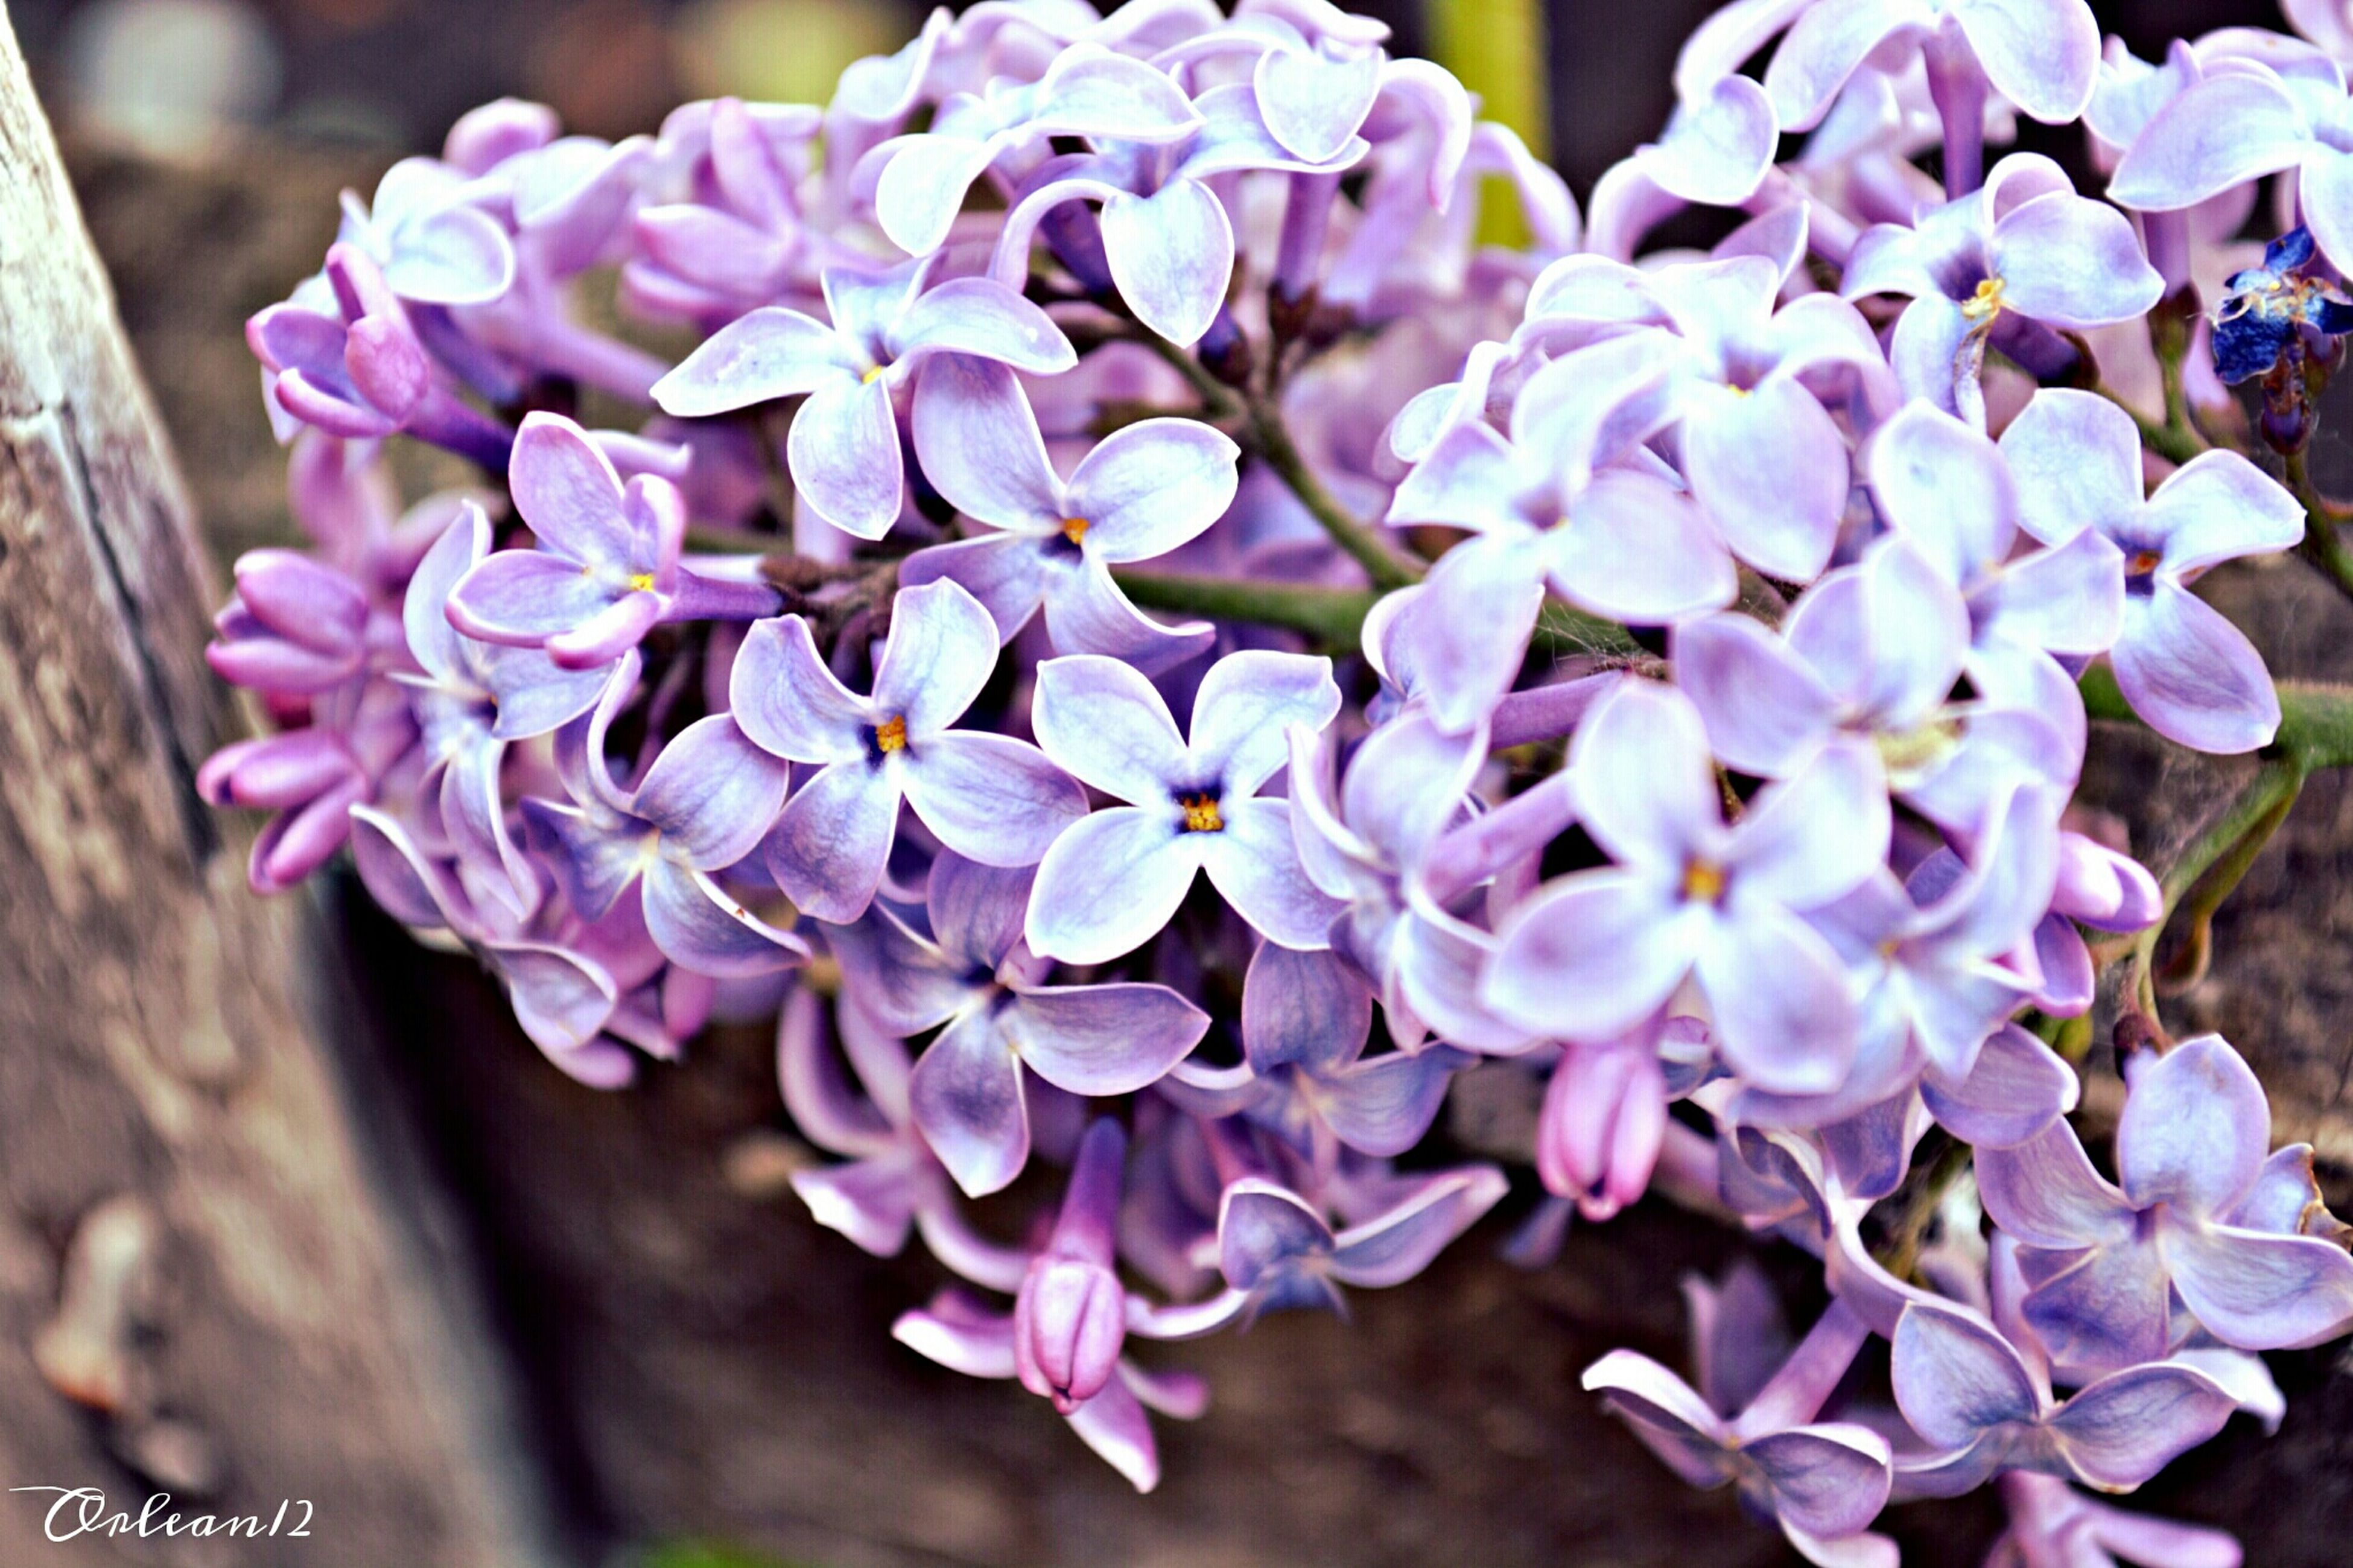 flower, fragility, freshness, petal, purple, growth, beauty in nature, flower head, close-up, focus on foreground, nature, blooming, plant, in bloom, bunch of flowers, hydrangea, blossom, selective focus, botany, pink color